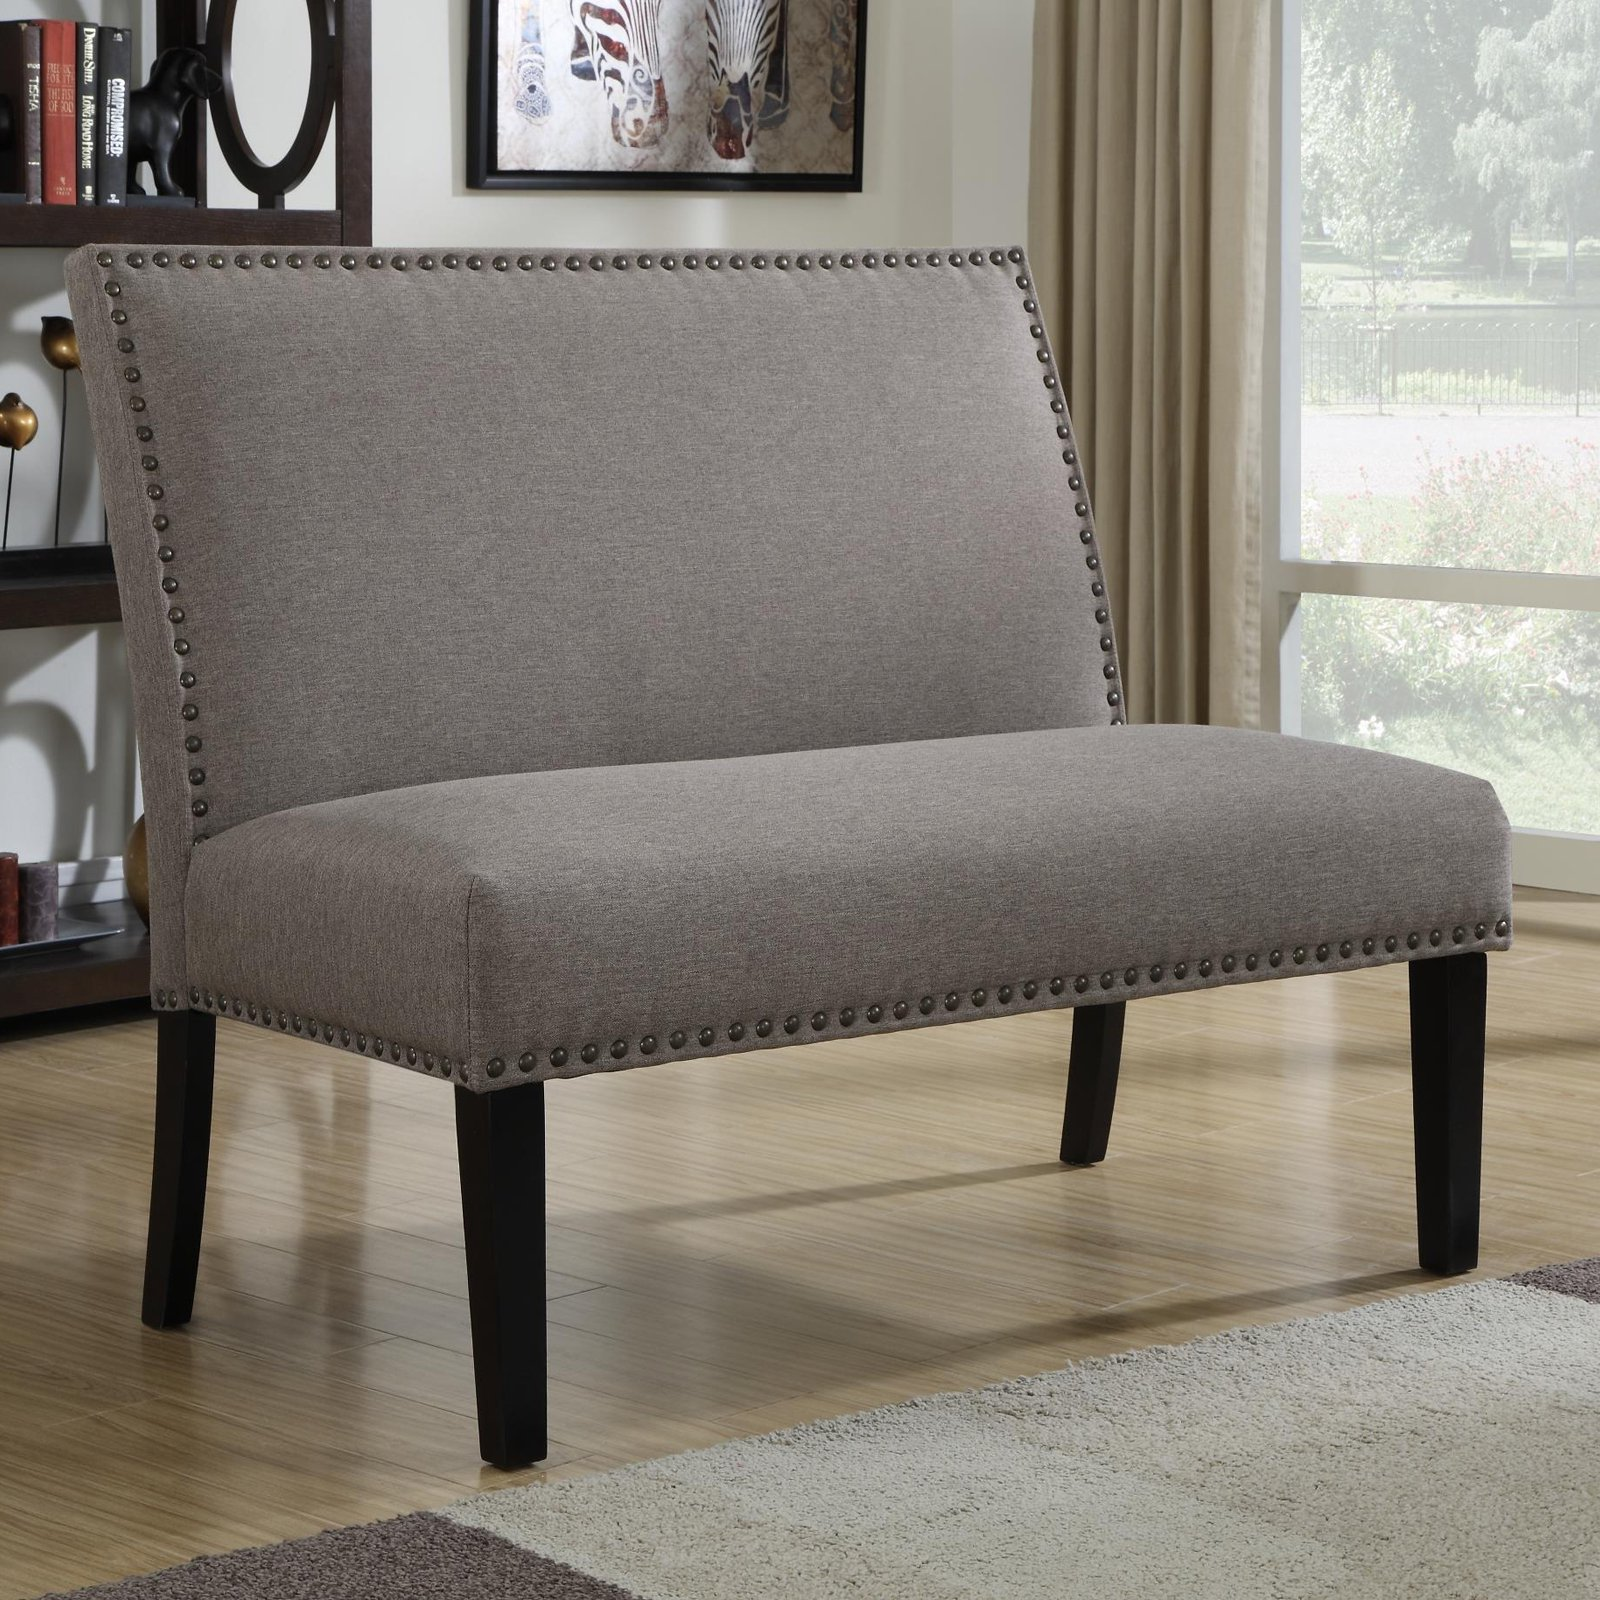 Home Meridian Banquette, Gray